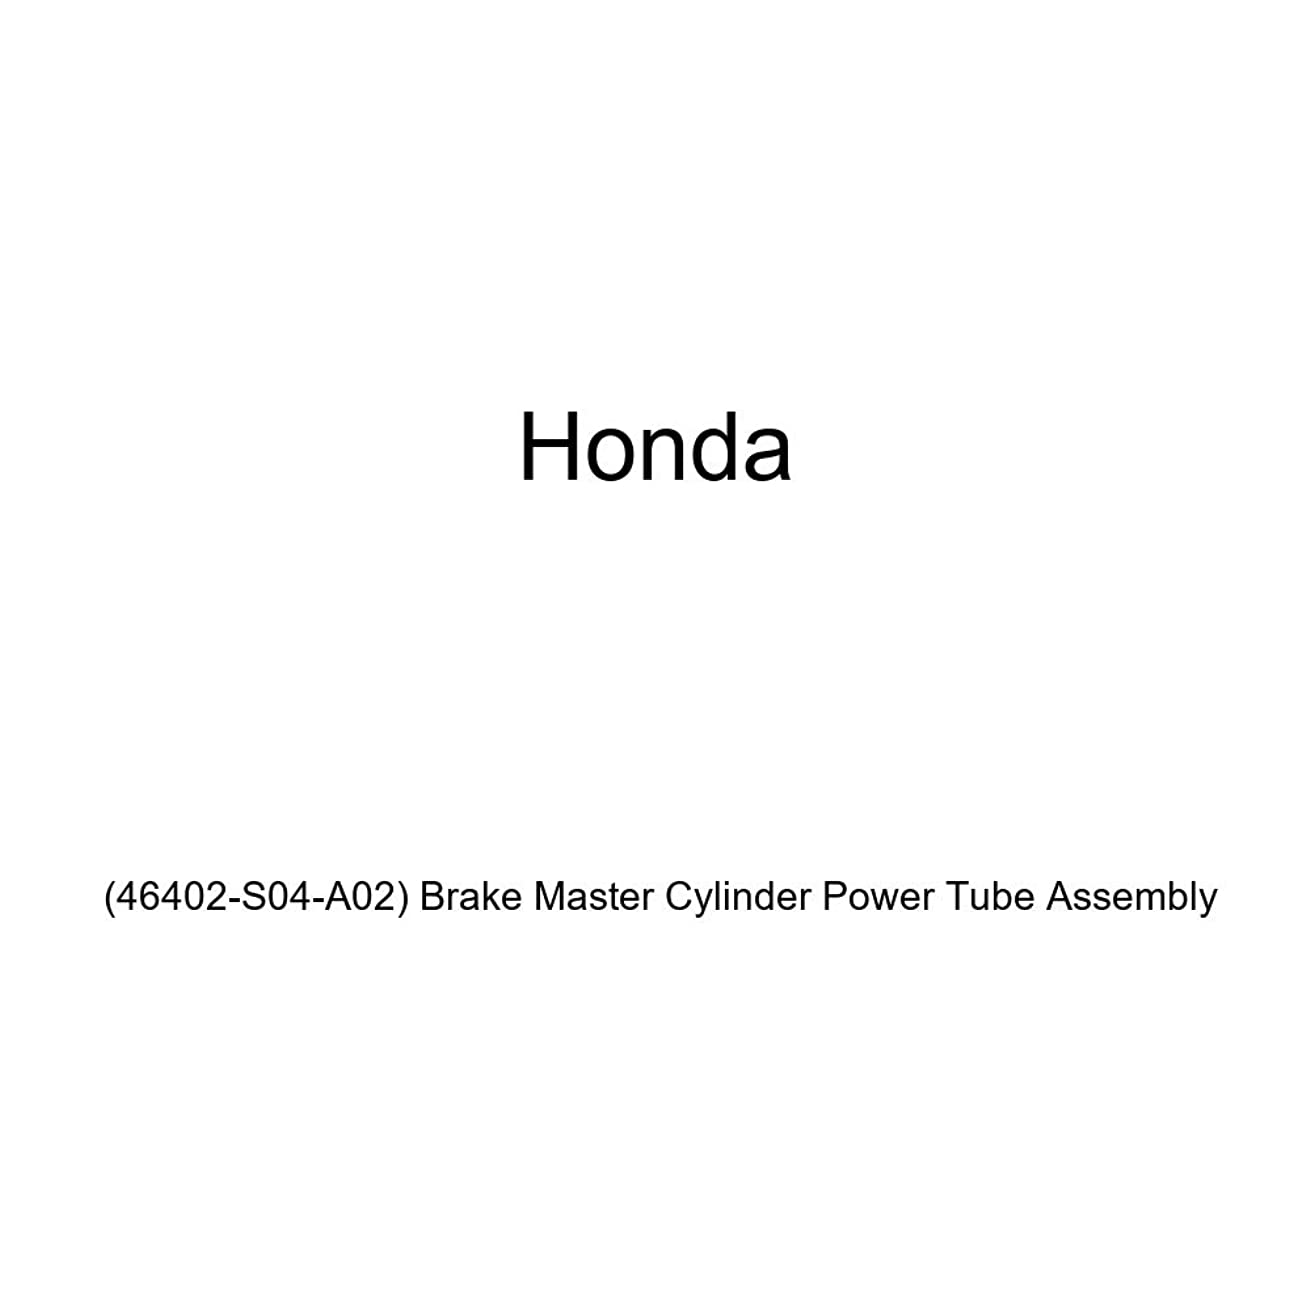 Genuine Honda (46402-S04-A02) Brake Master Cylinder Power Tube Assembly